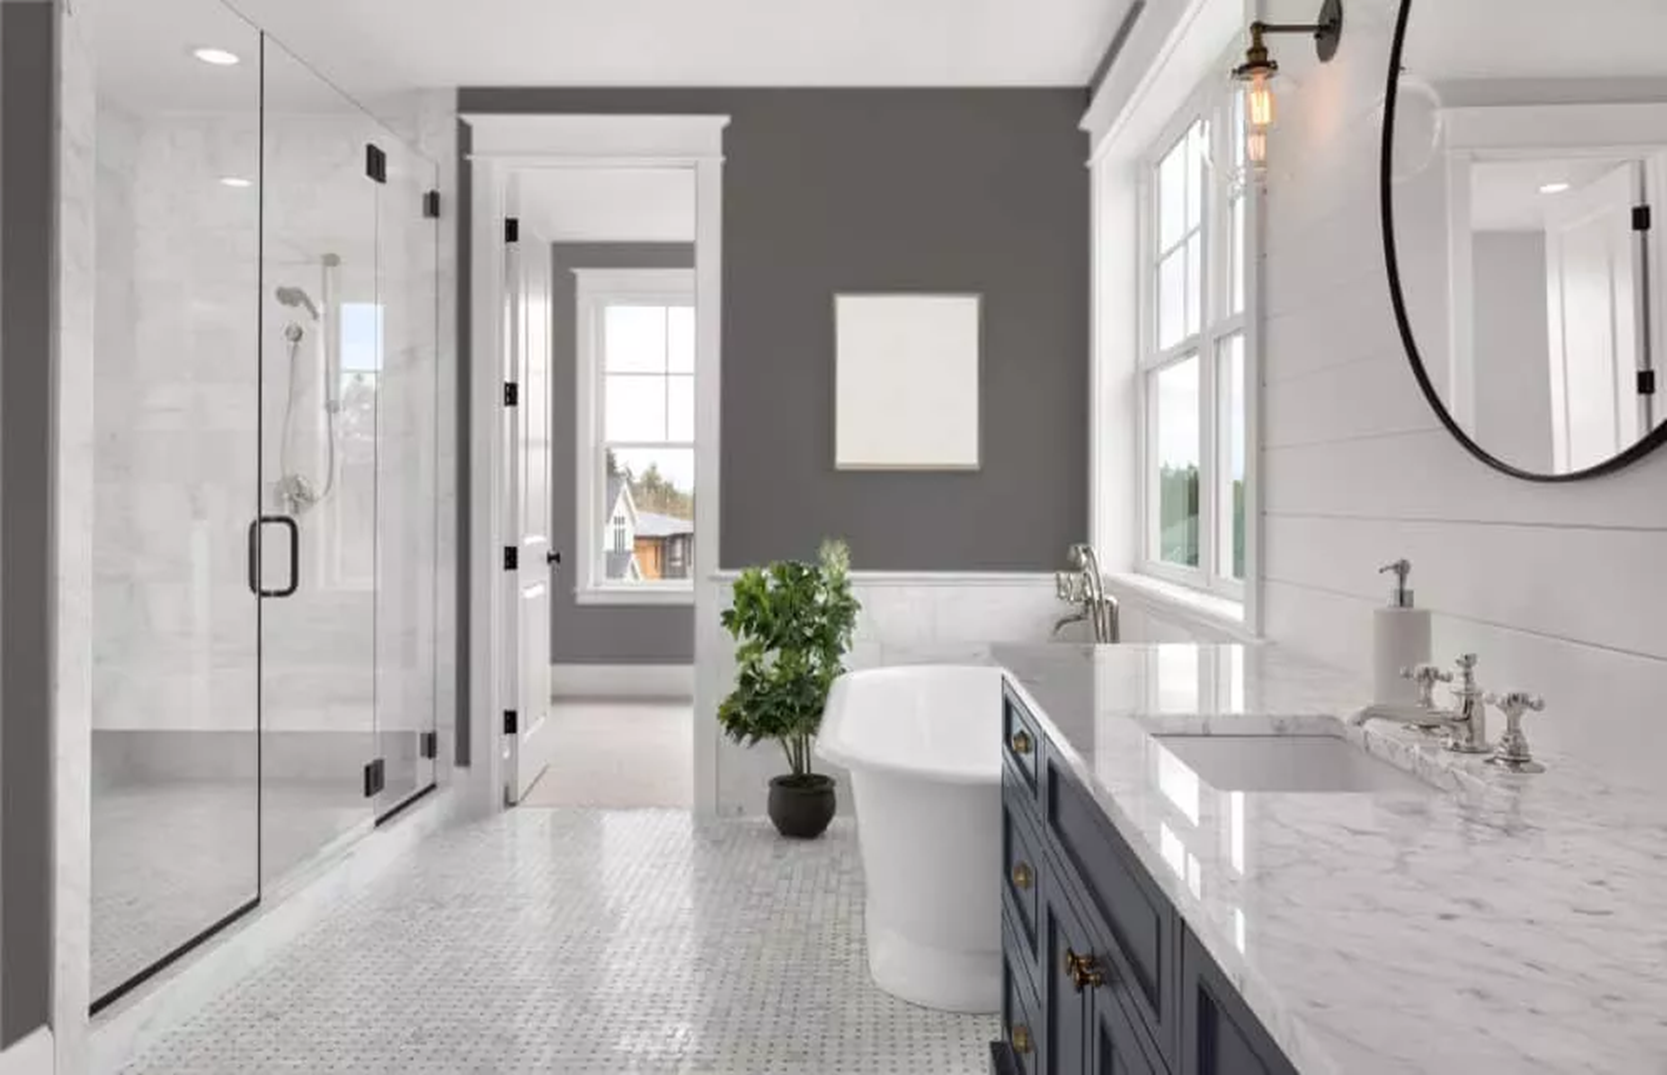 Those House Owners Are Likely The Unlucky Bunch Who Found Mold In Their Bathroom If You Were Renovating Your In 2020 Small Bathroom Bathrooms Remodel Mold In Bathroom